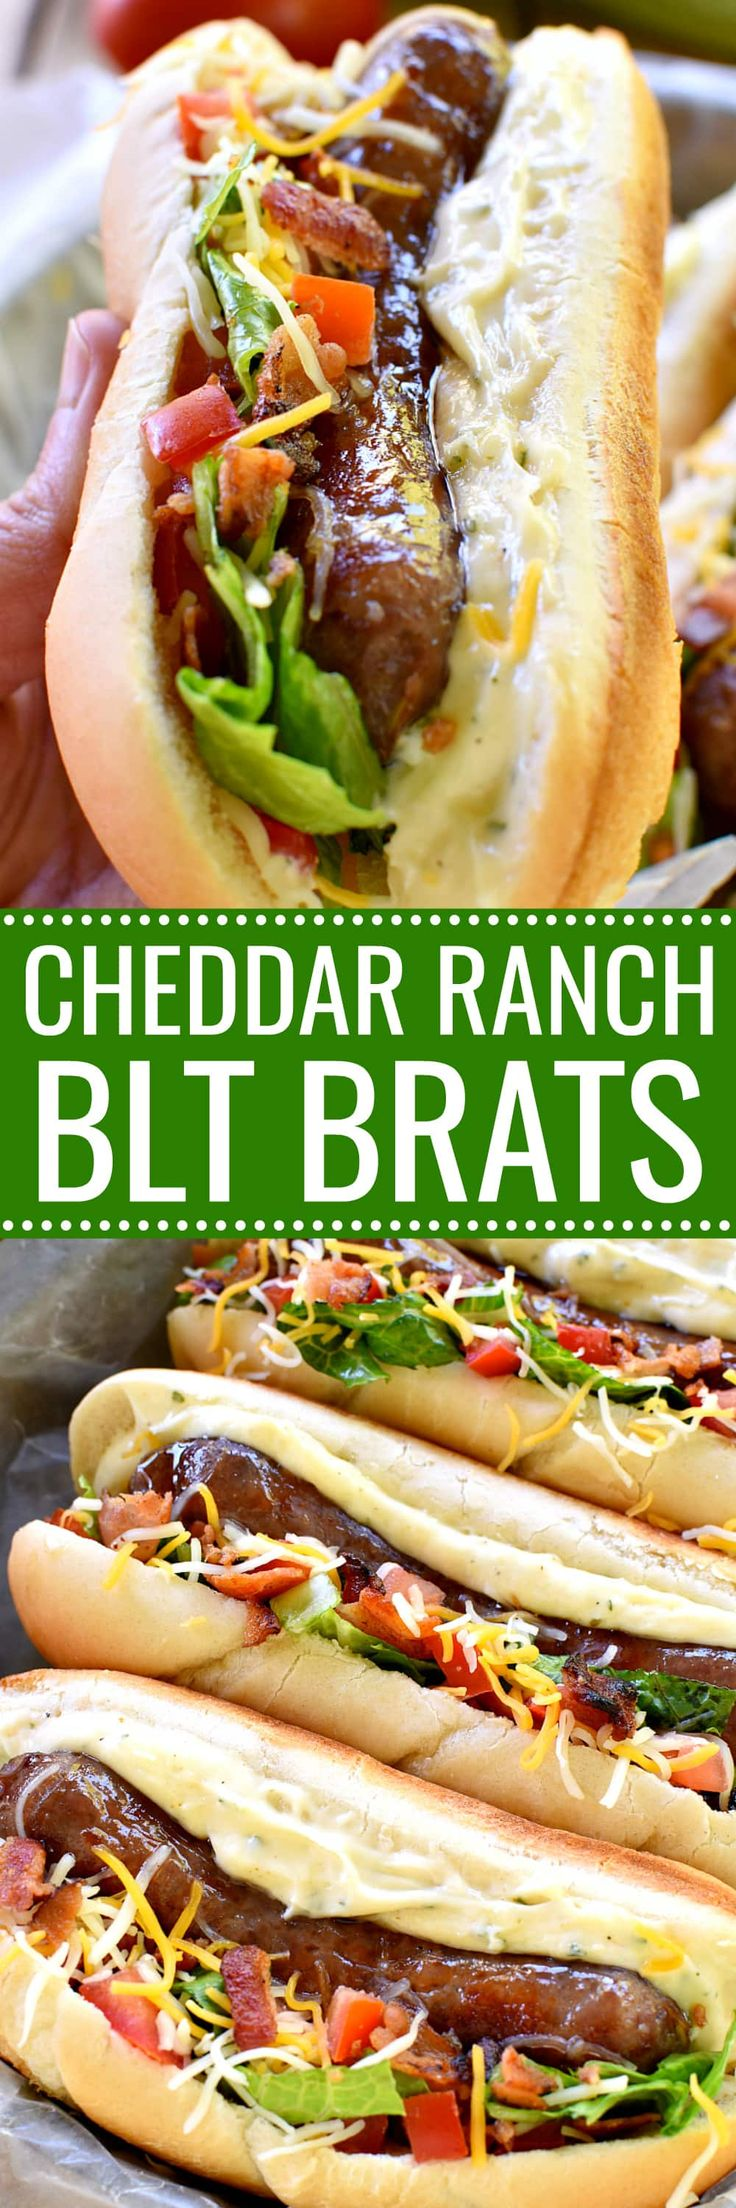 These Cheddar Ranch BLT Brats combine all the best flavors in one delicious sandwich! Perfect for Father's Day, game day, or any day....this sandwich is packed with favor and SO easy to make! @jvillesausage #ad